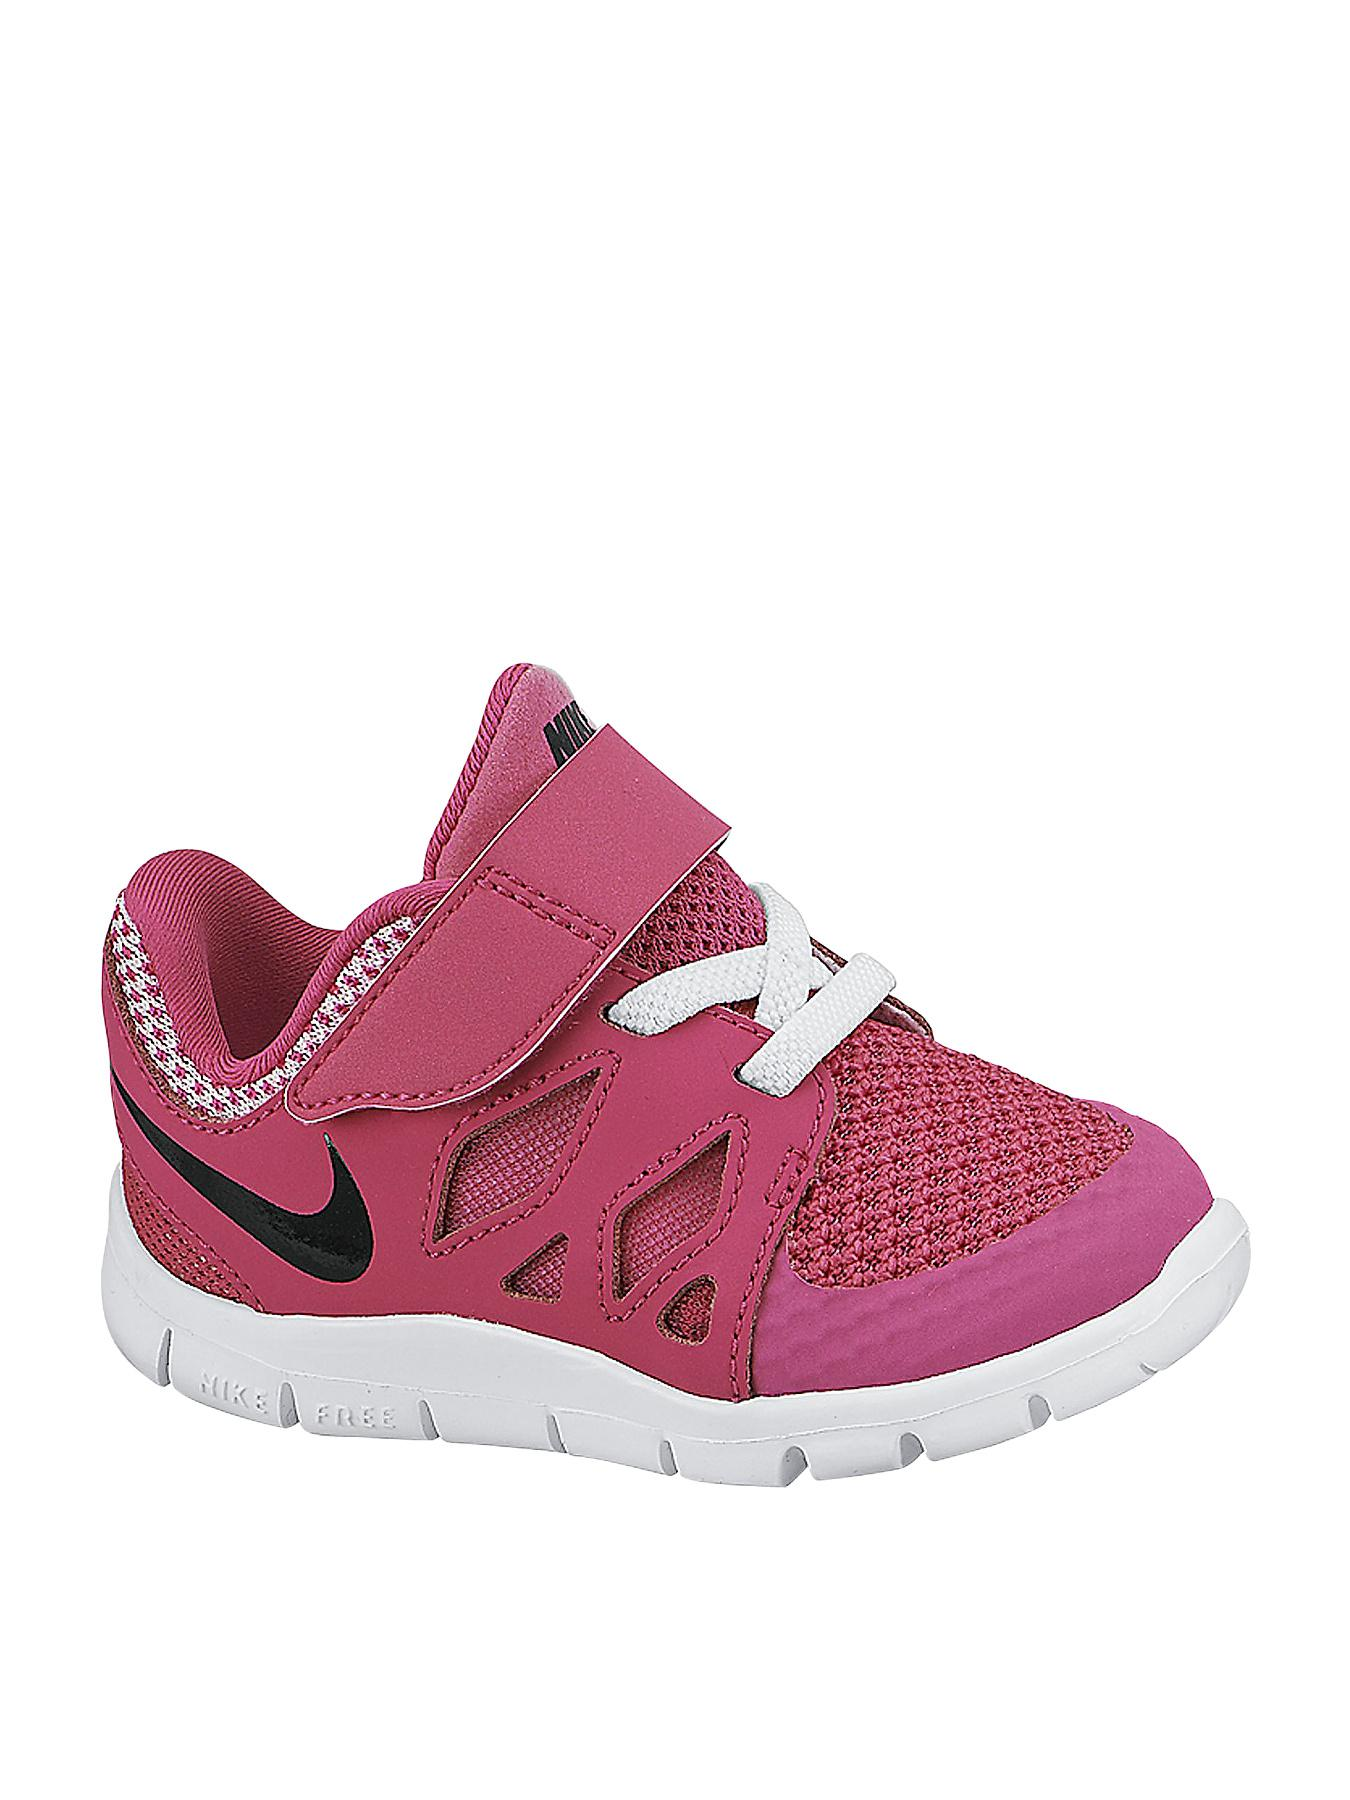 Nike FREE 5 Toddler Trainers - Pink, Pink